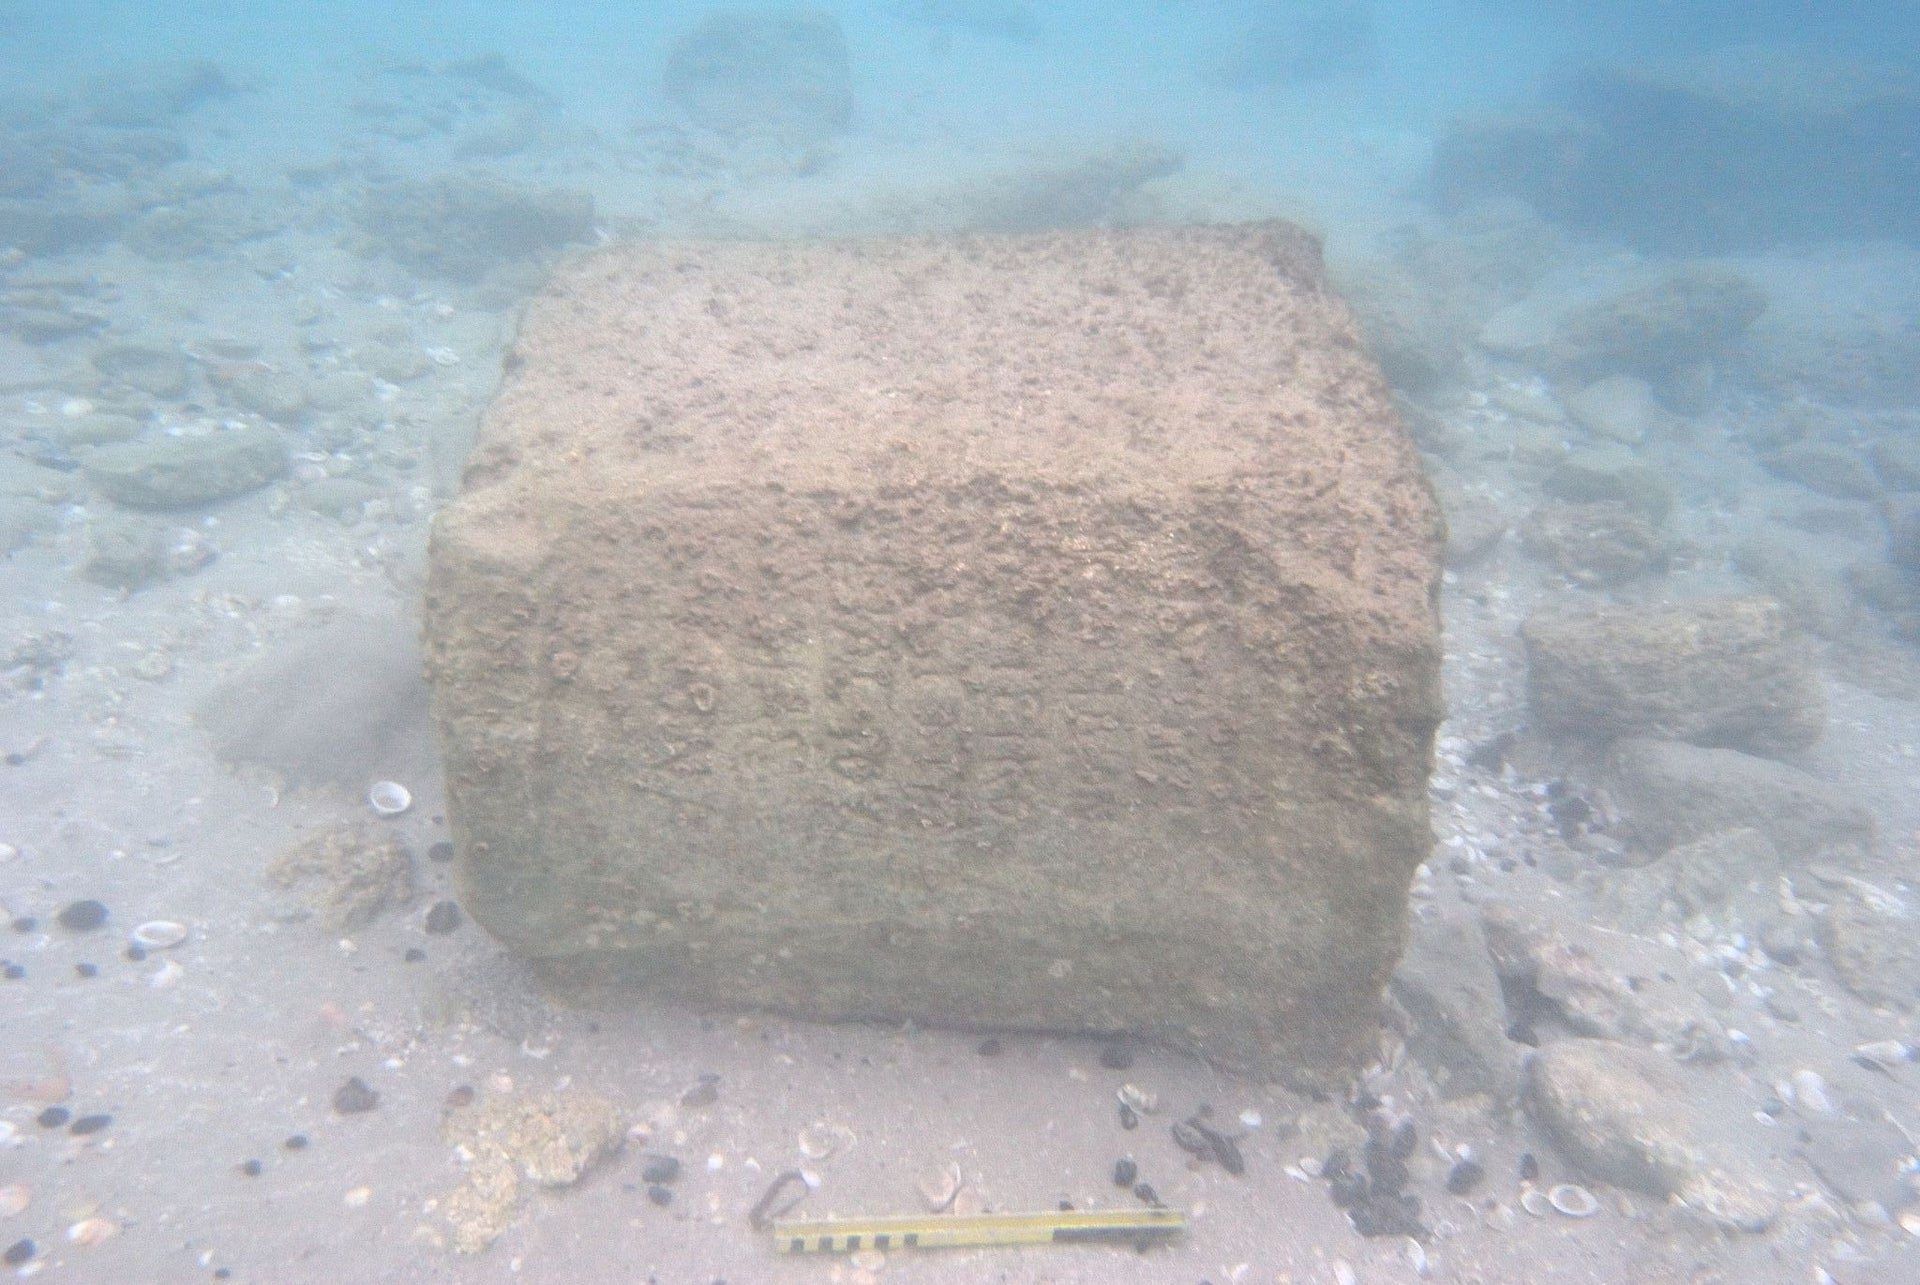 The 1900-year-old Roman inscription mentioning Judea, in situ at a depth of about 1.5 meters on the Dor seabed, after being exposed by a storm.